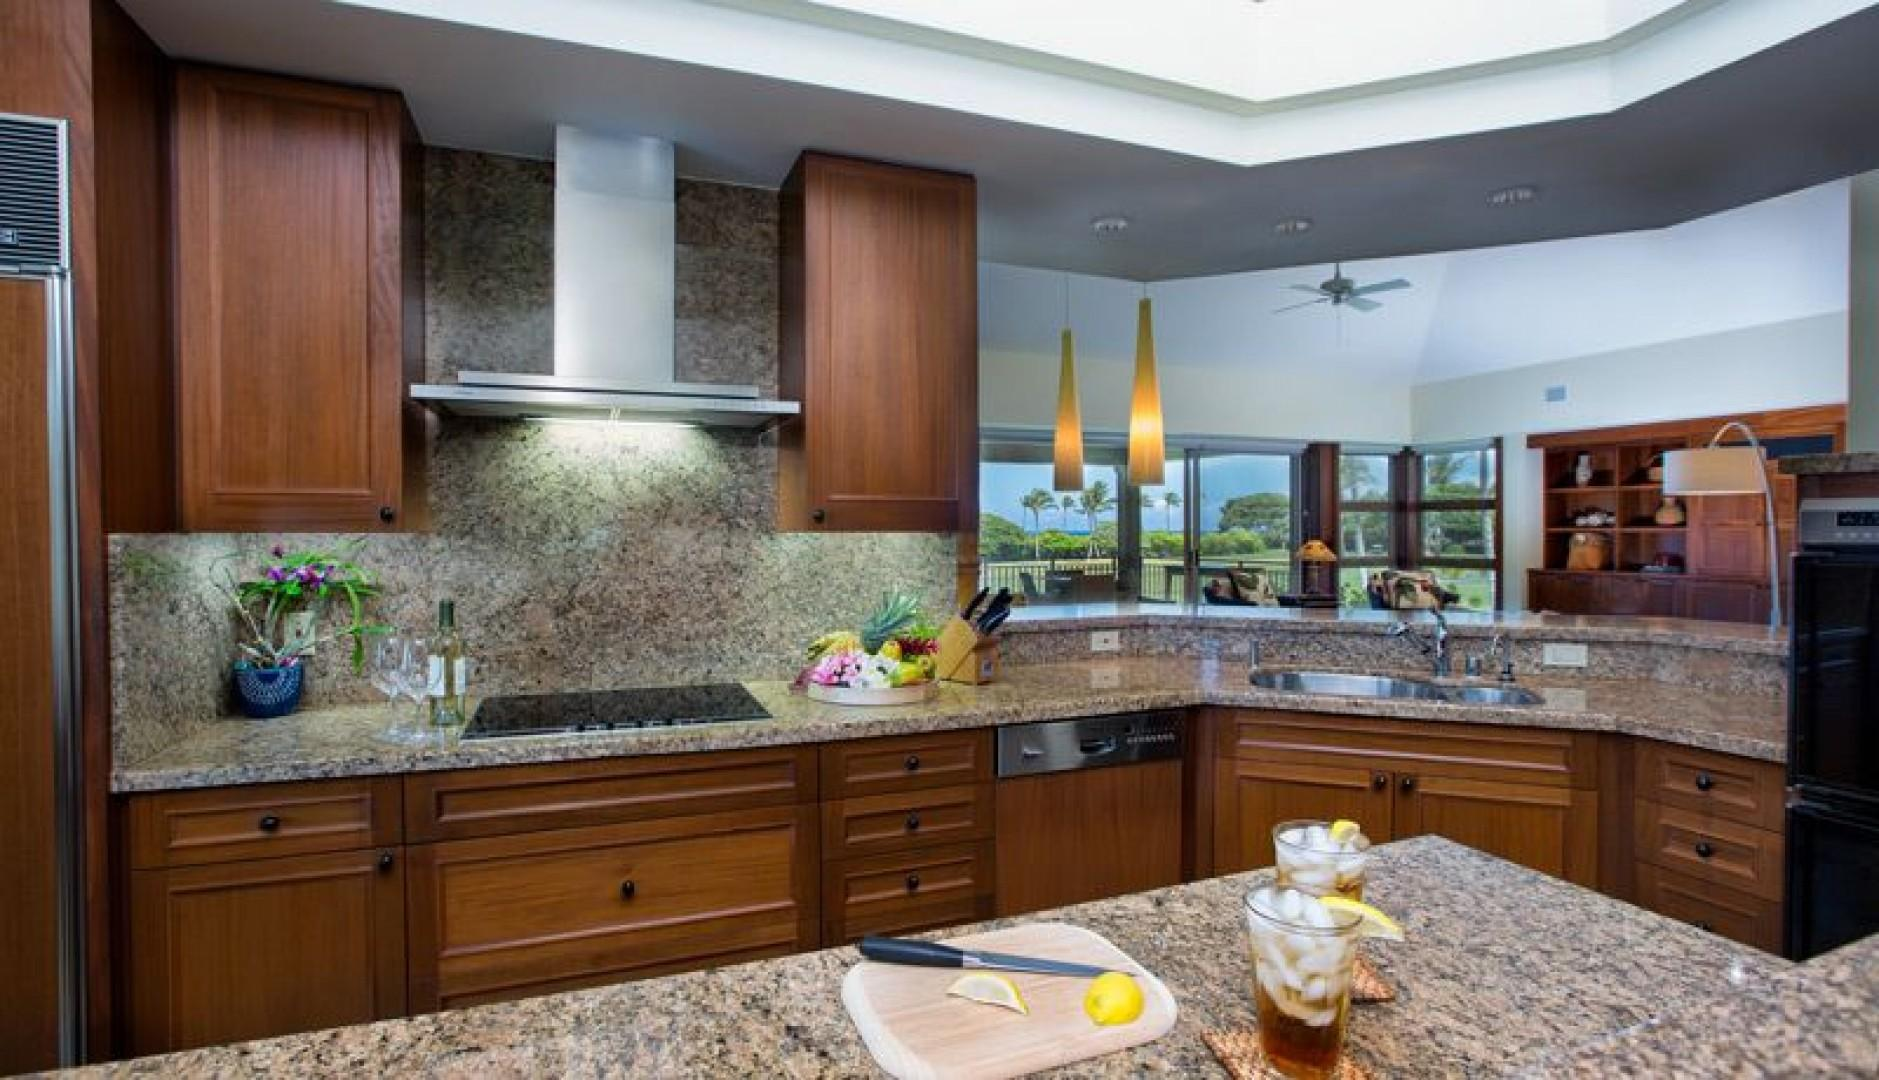 Gourmet Kitchen with everything you need.